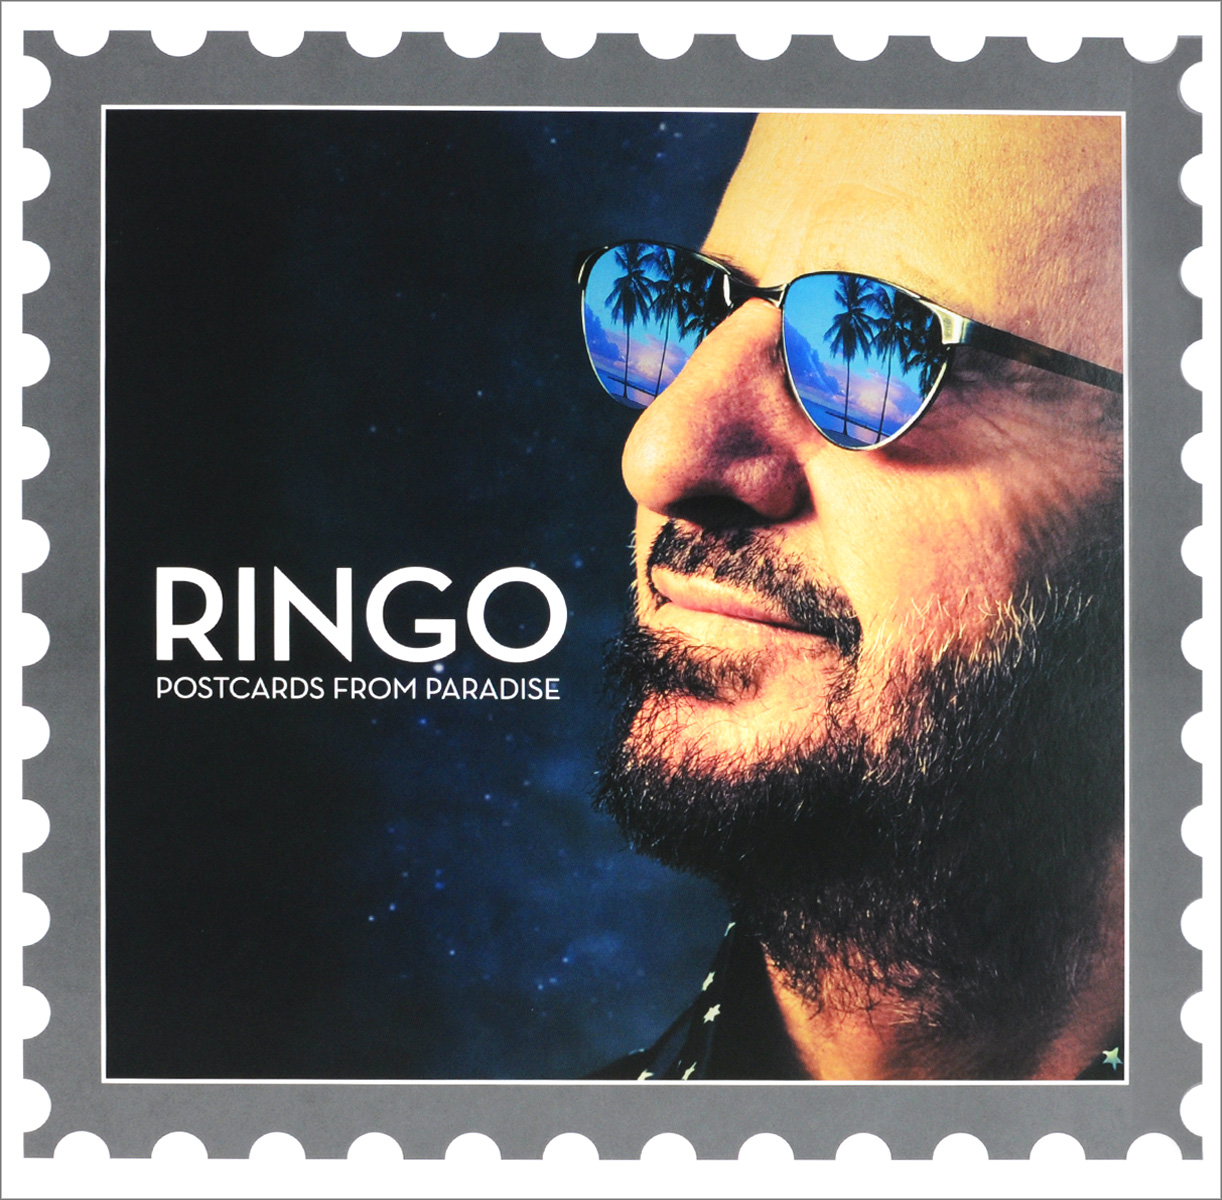 Ринго Старр Ringo. Postcards From Paradise (LP) 7 inch video door phone doorbell intercom kit 1 camera 1 monitor